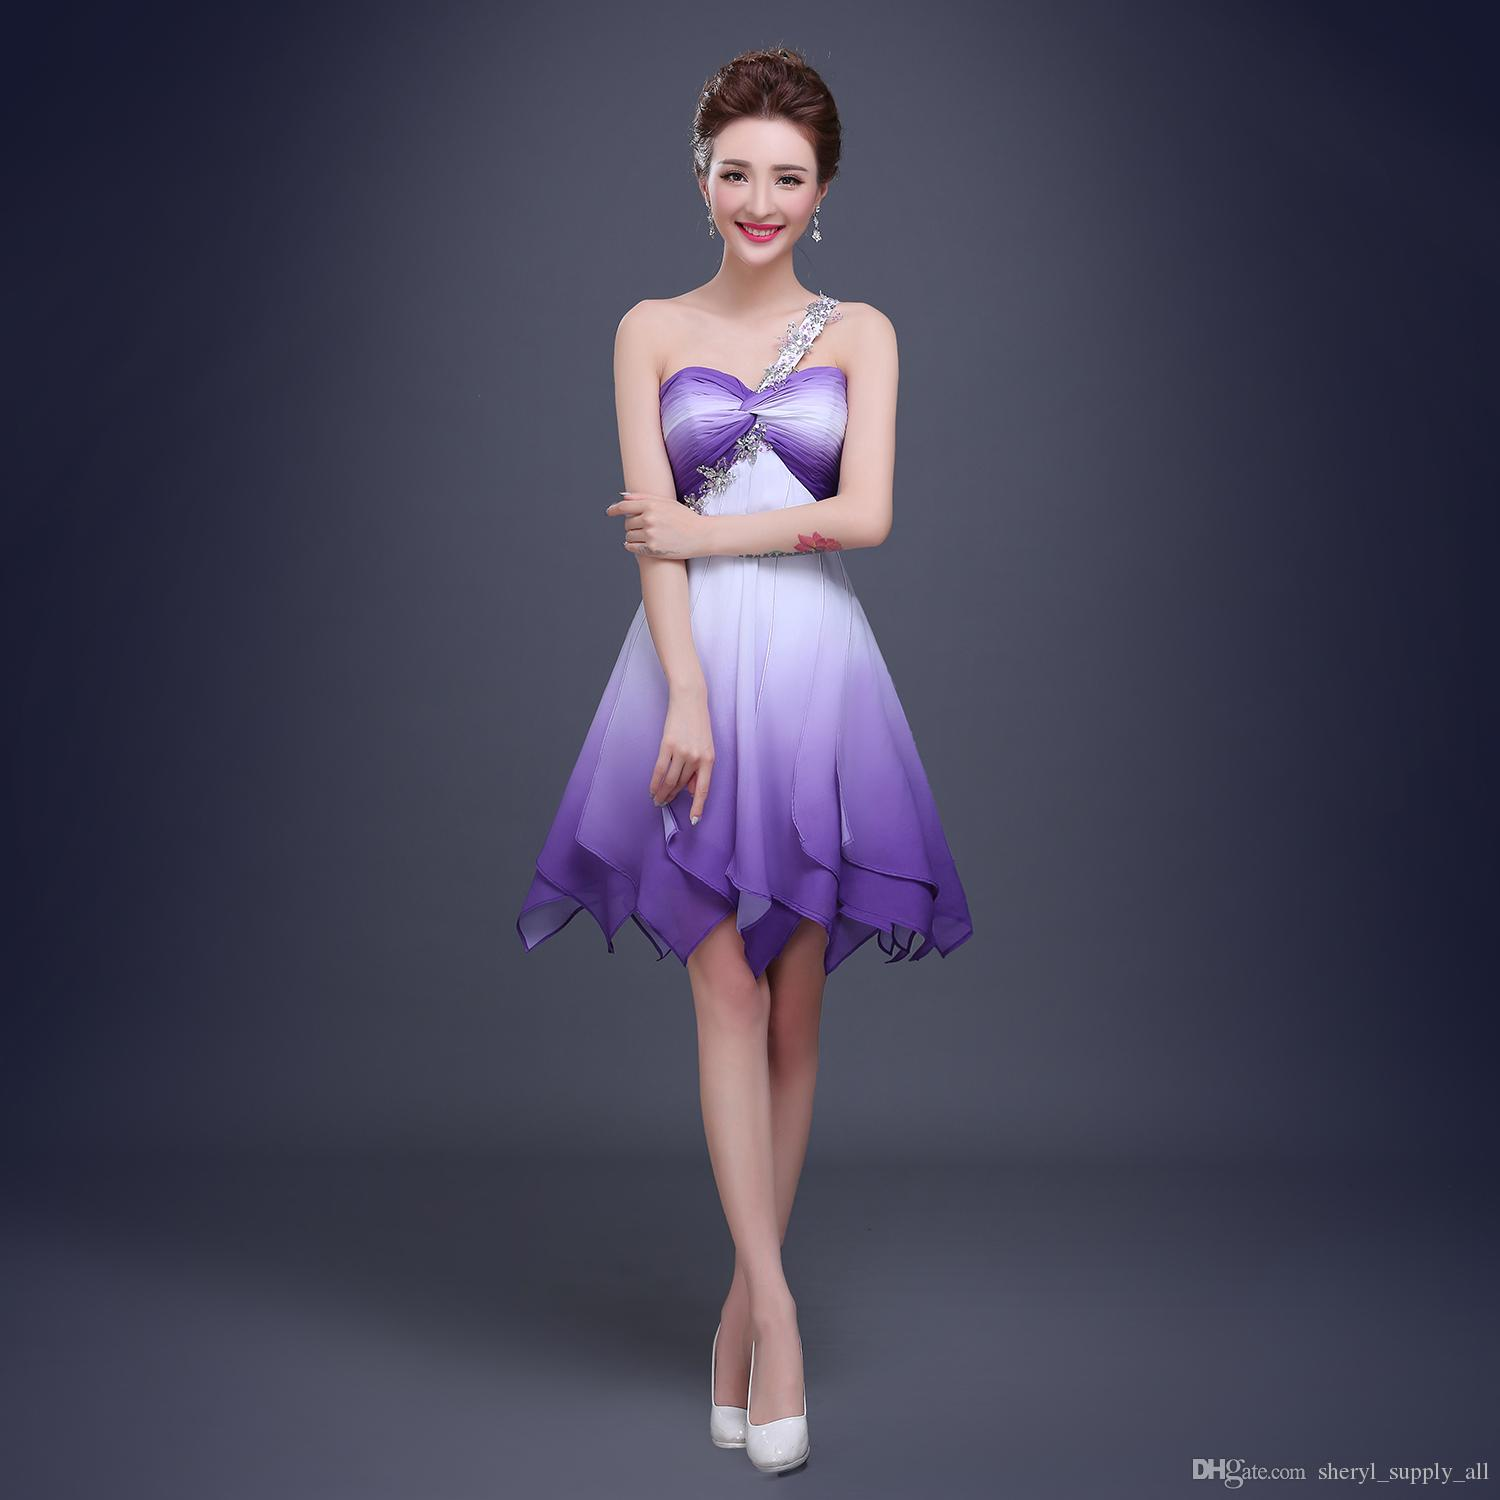 Teen Party Dresses – Fashion dresses